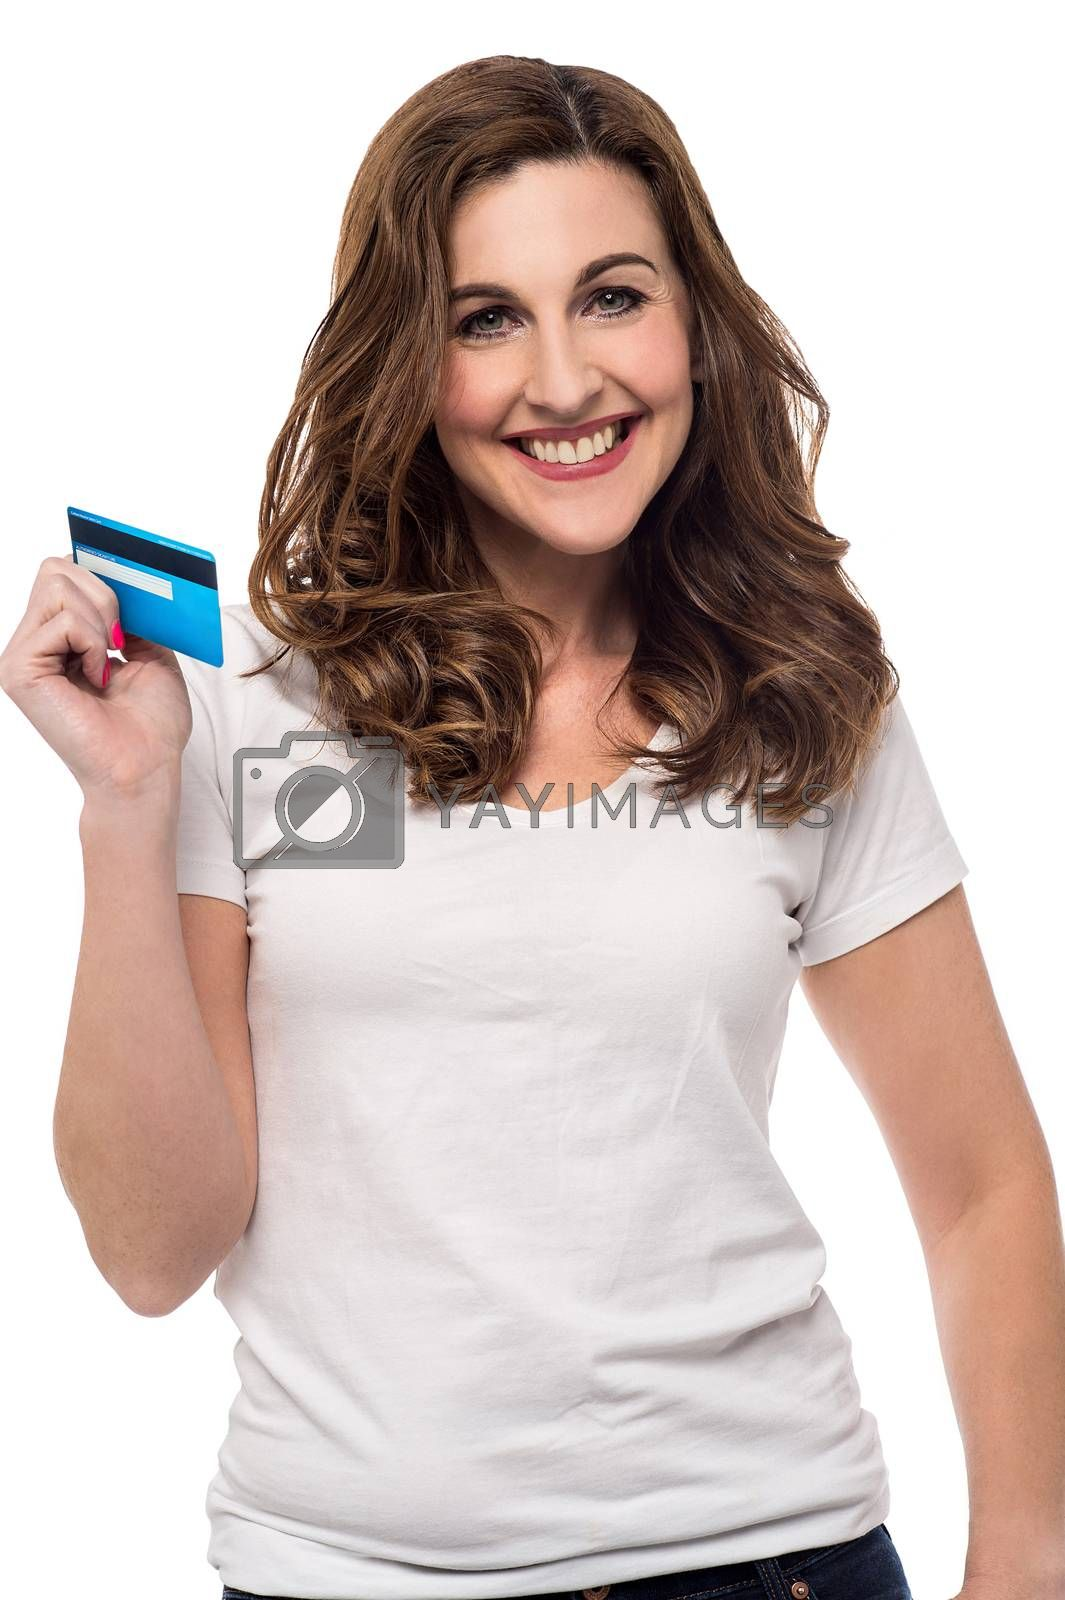 Credit card made shopping easy ! by stockyimages